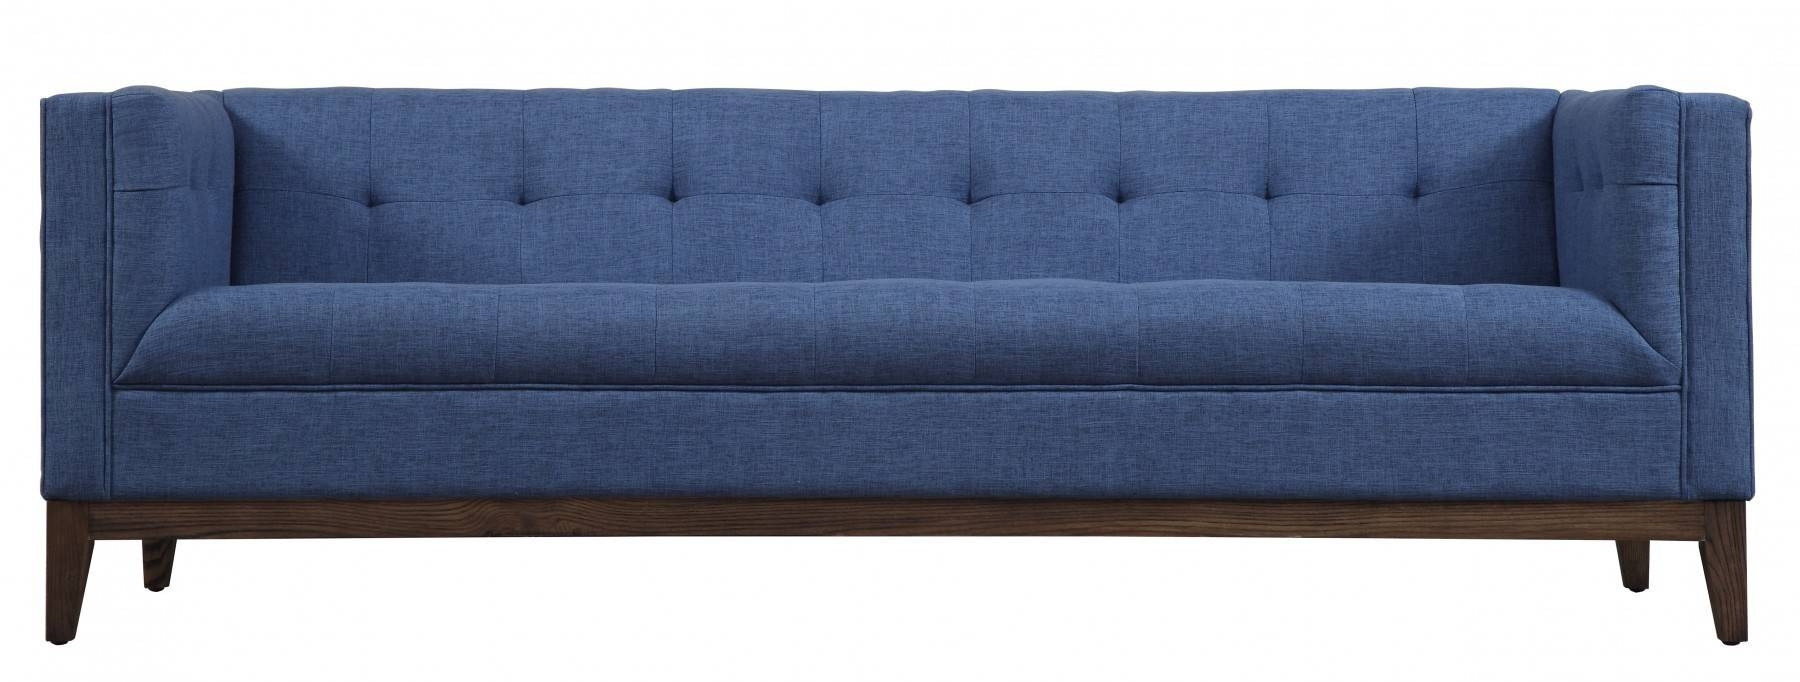 Gavin Linen Sofatov Furniture Buy Online At Best Price - Sohomod for Tufted Linen Sofas (Image 11 of 30)